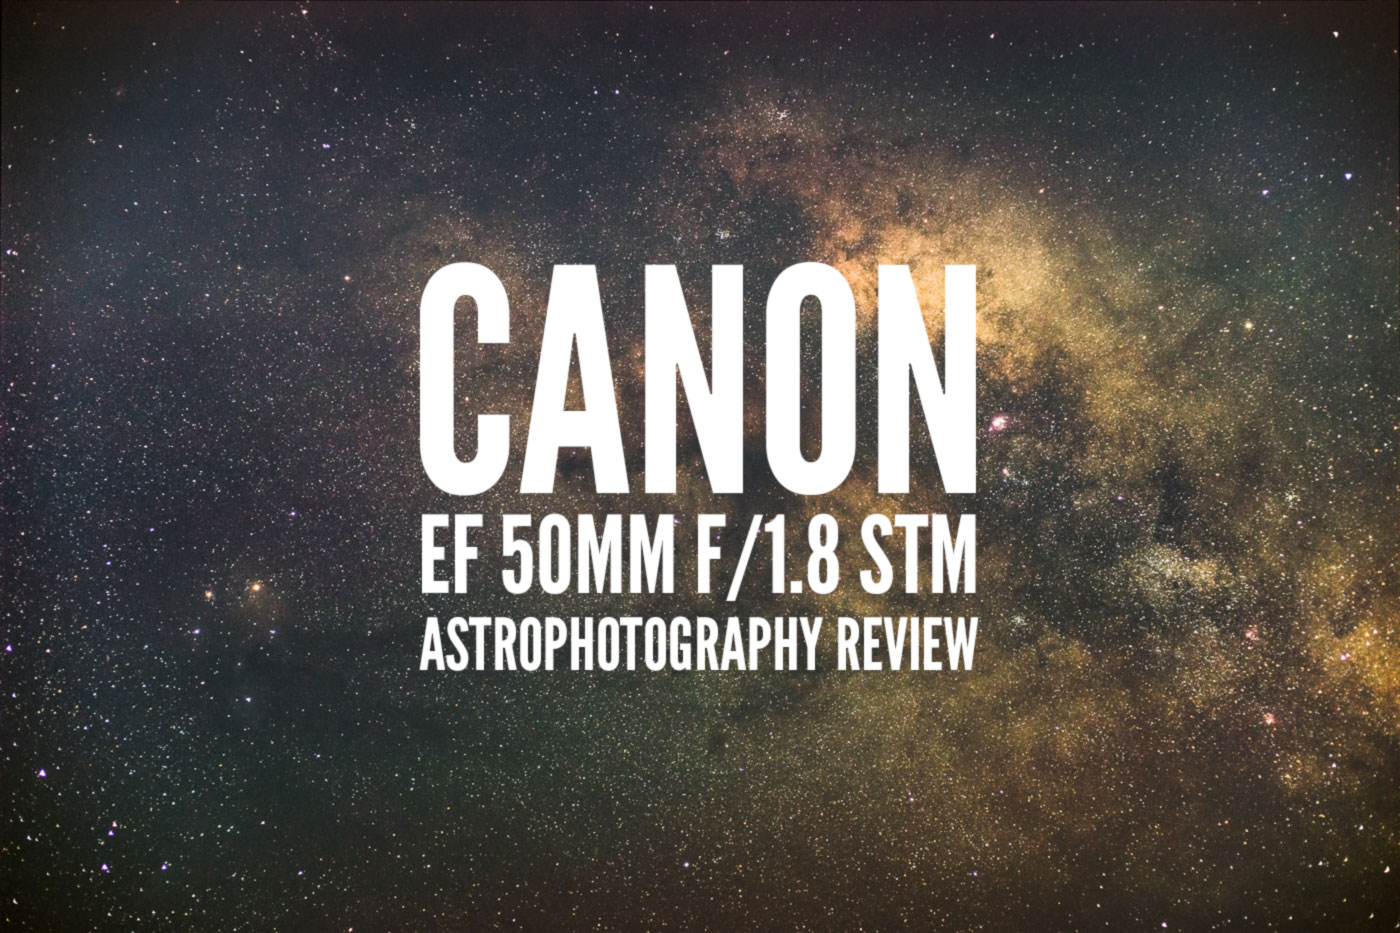 Canon Ef 50mm F 18 Stm Astrophotography Review Lonely Speck Posted On August 9 2015 November 12 2018 By Ian Norman